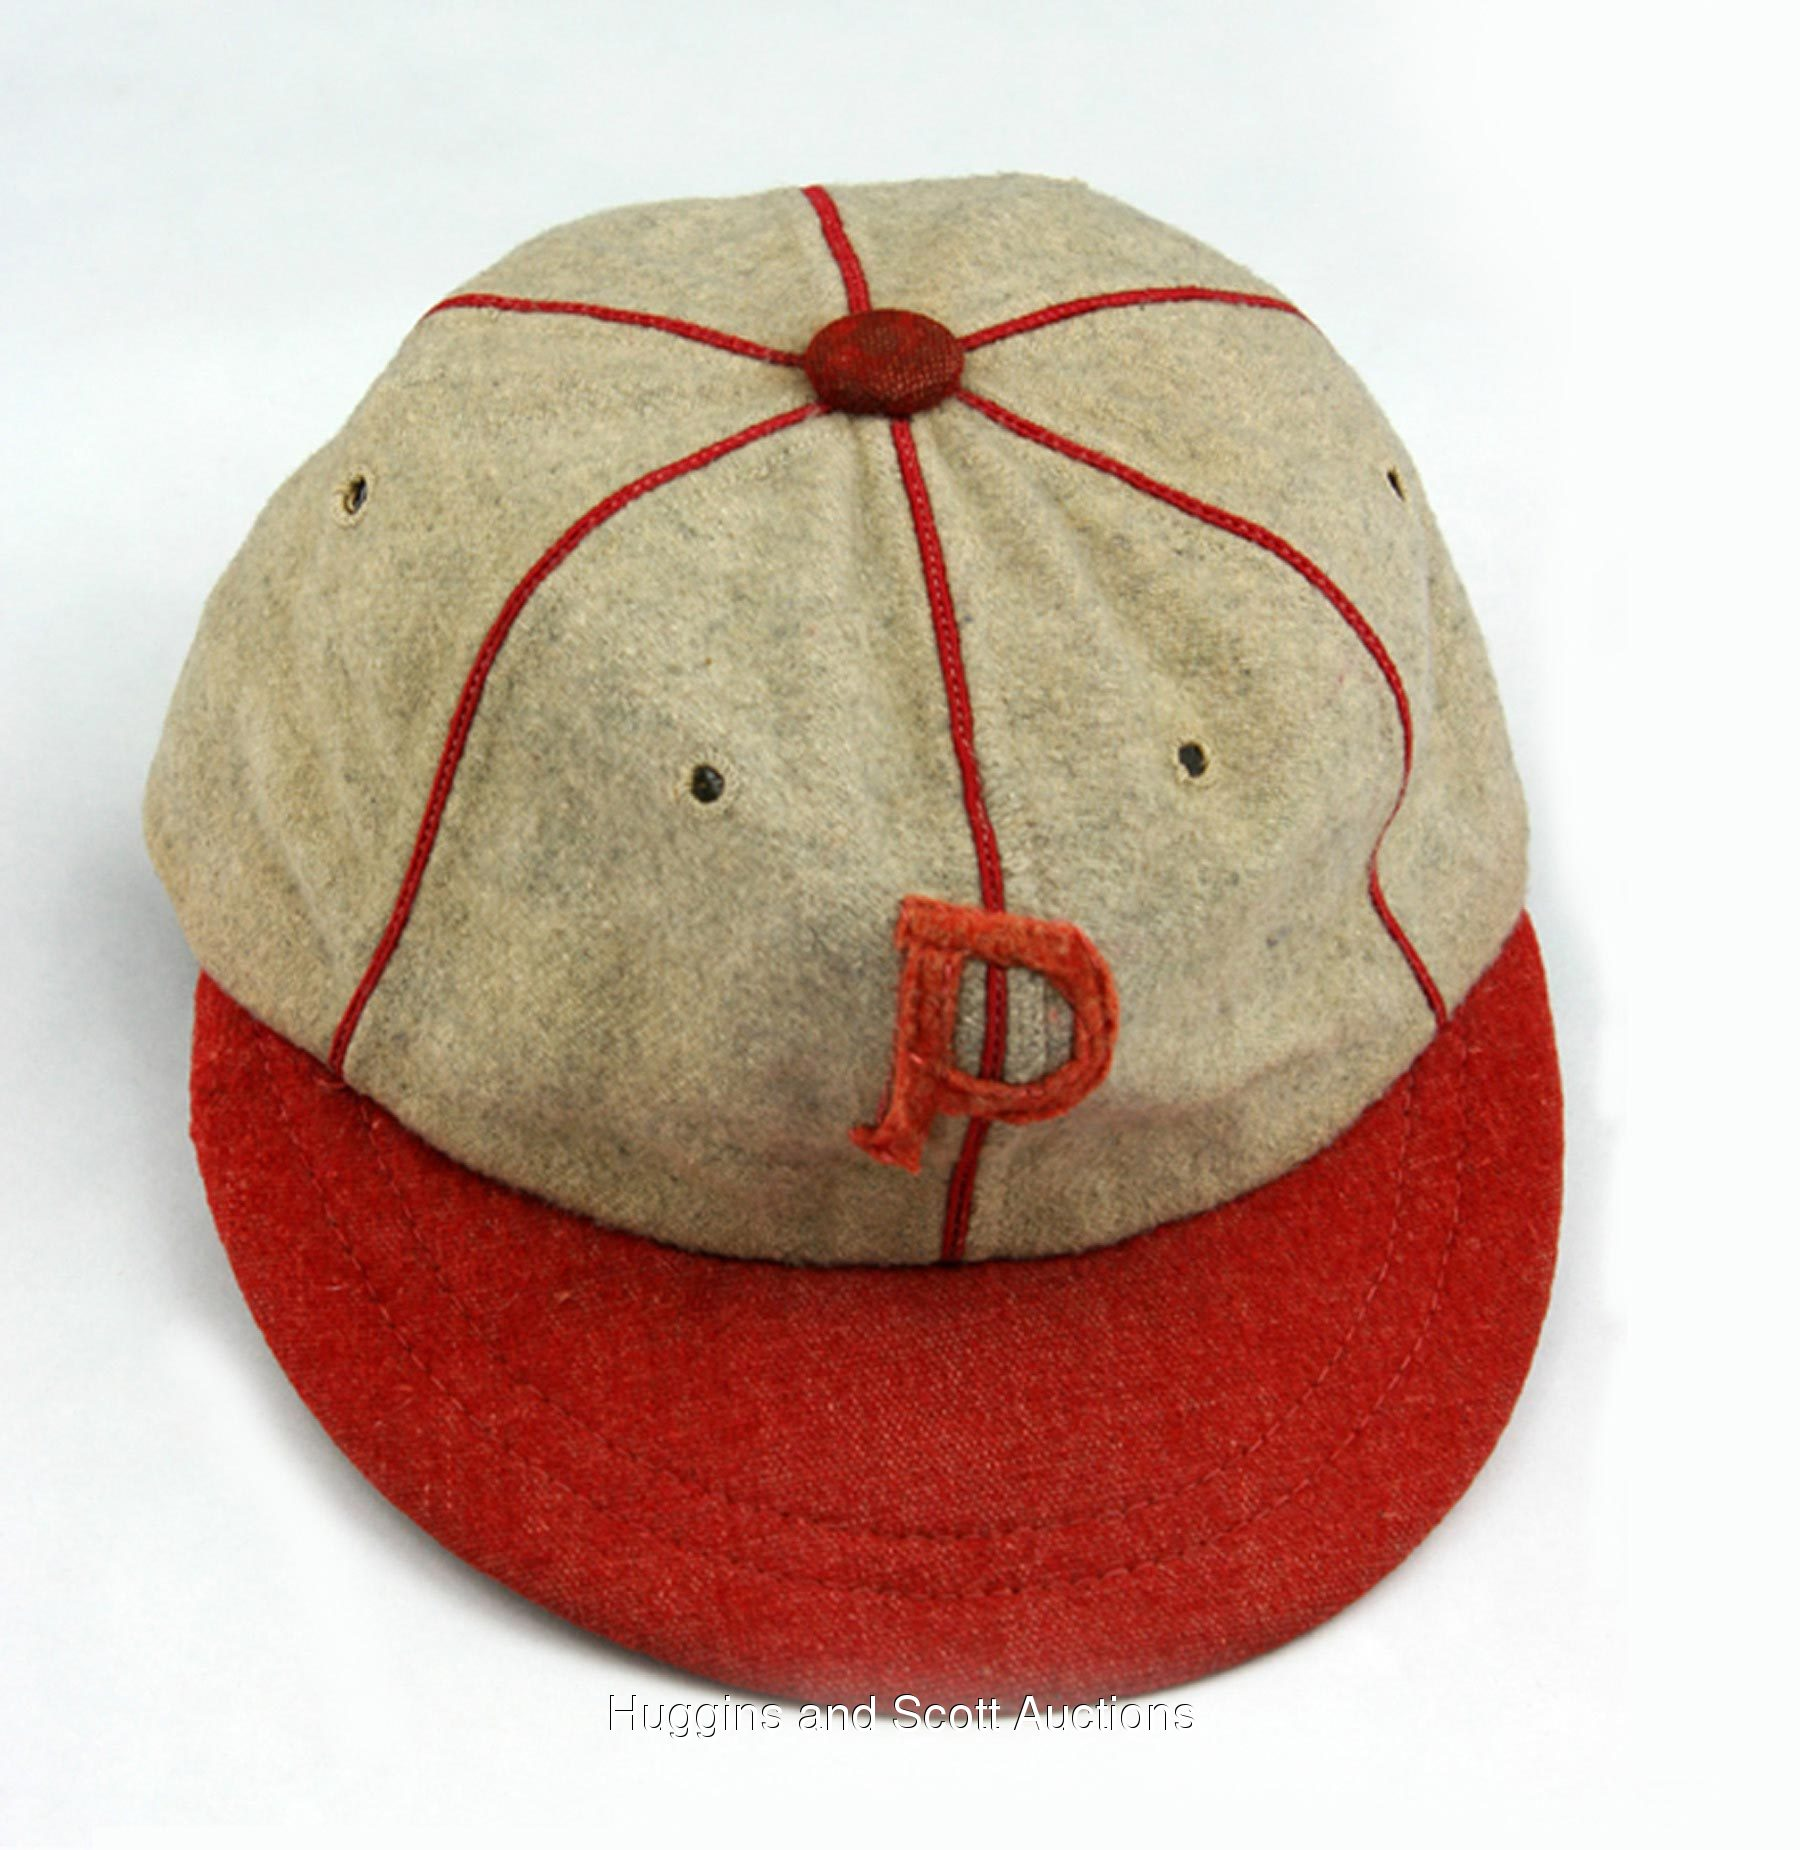 Phillies And Red Sox Will Wear Special 1915 Caps On